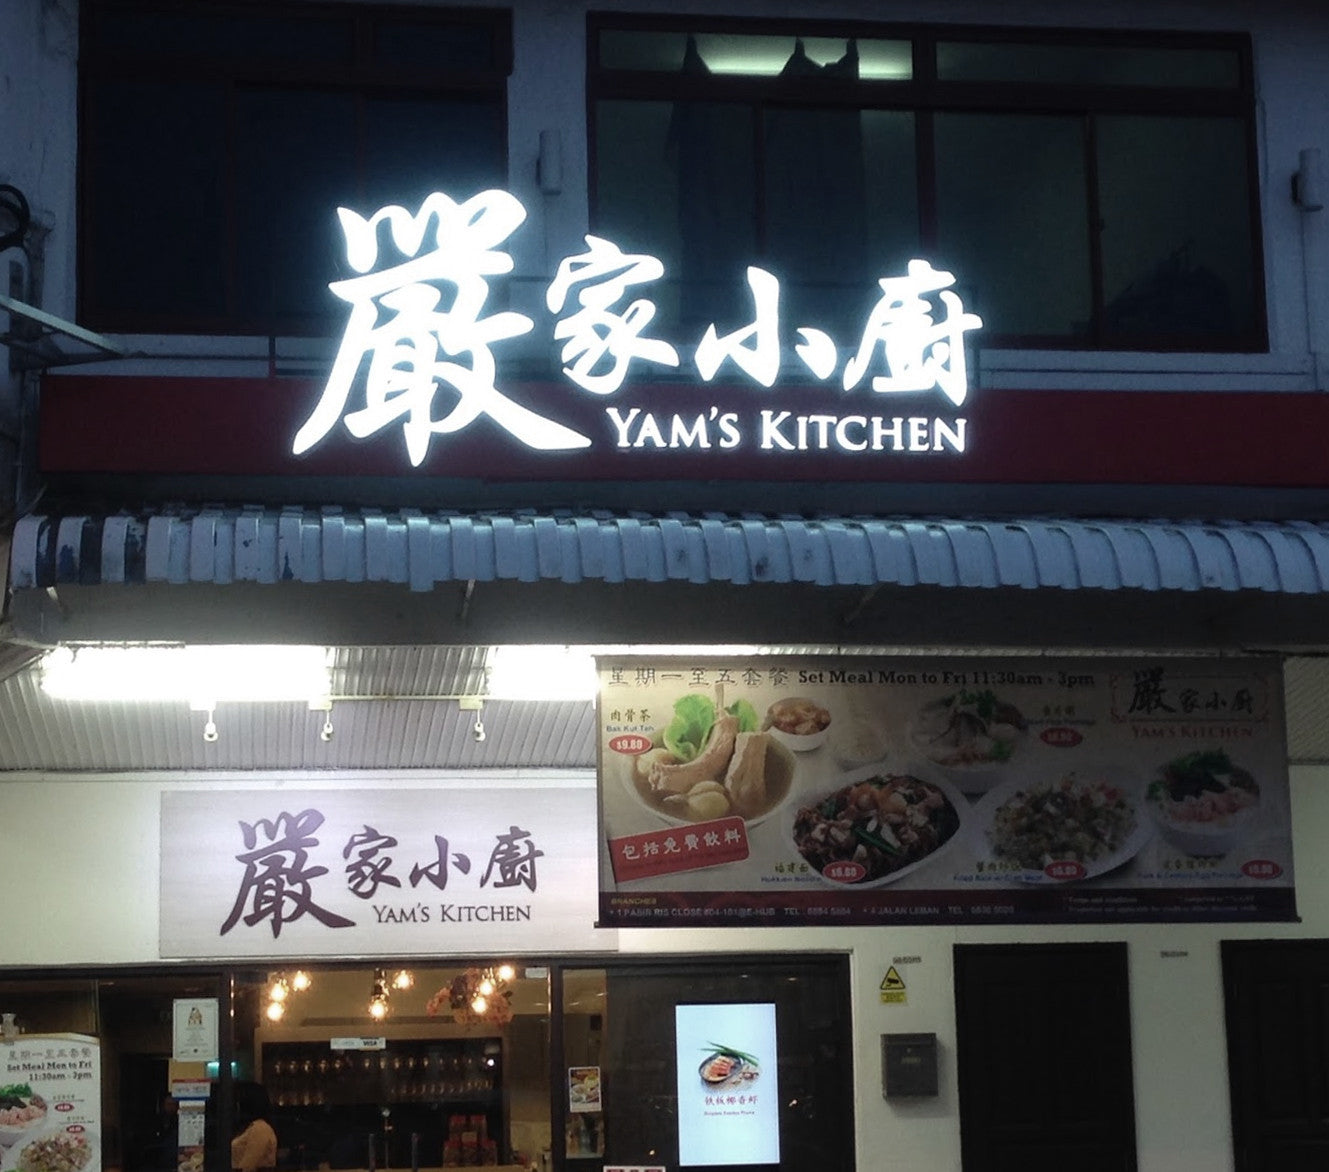 YAMS Kitchen